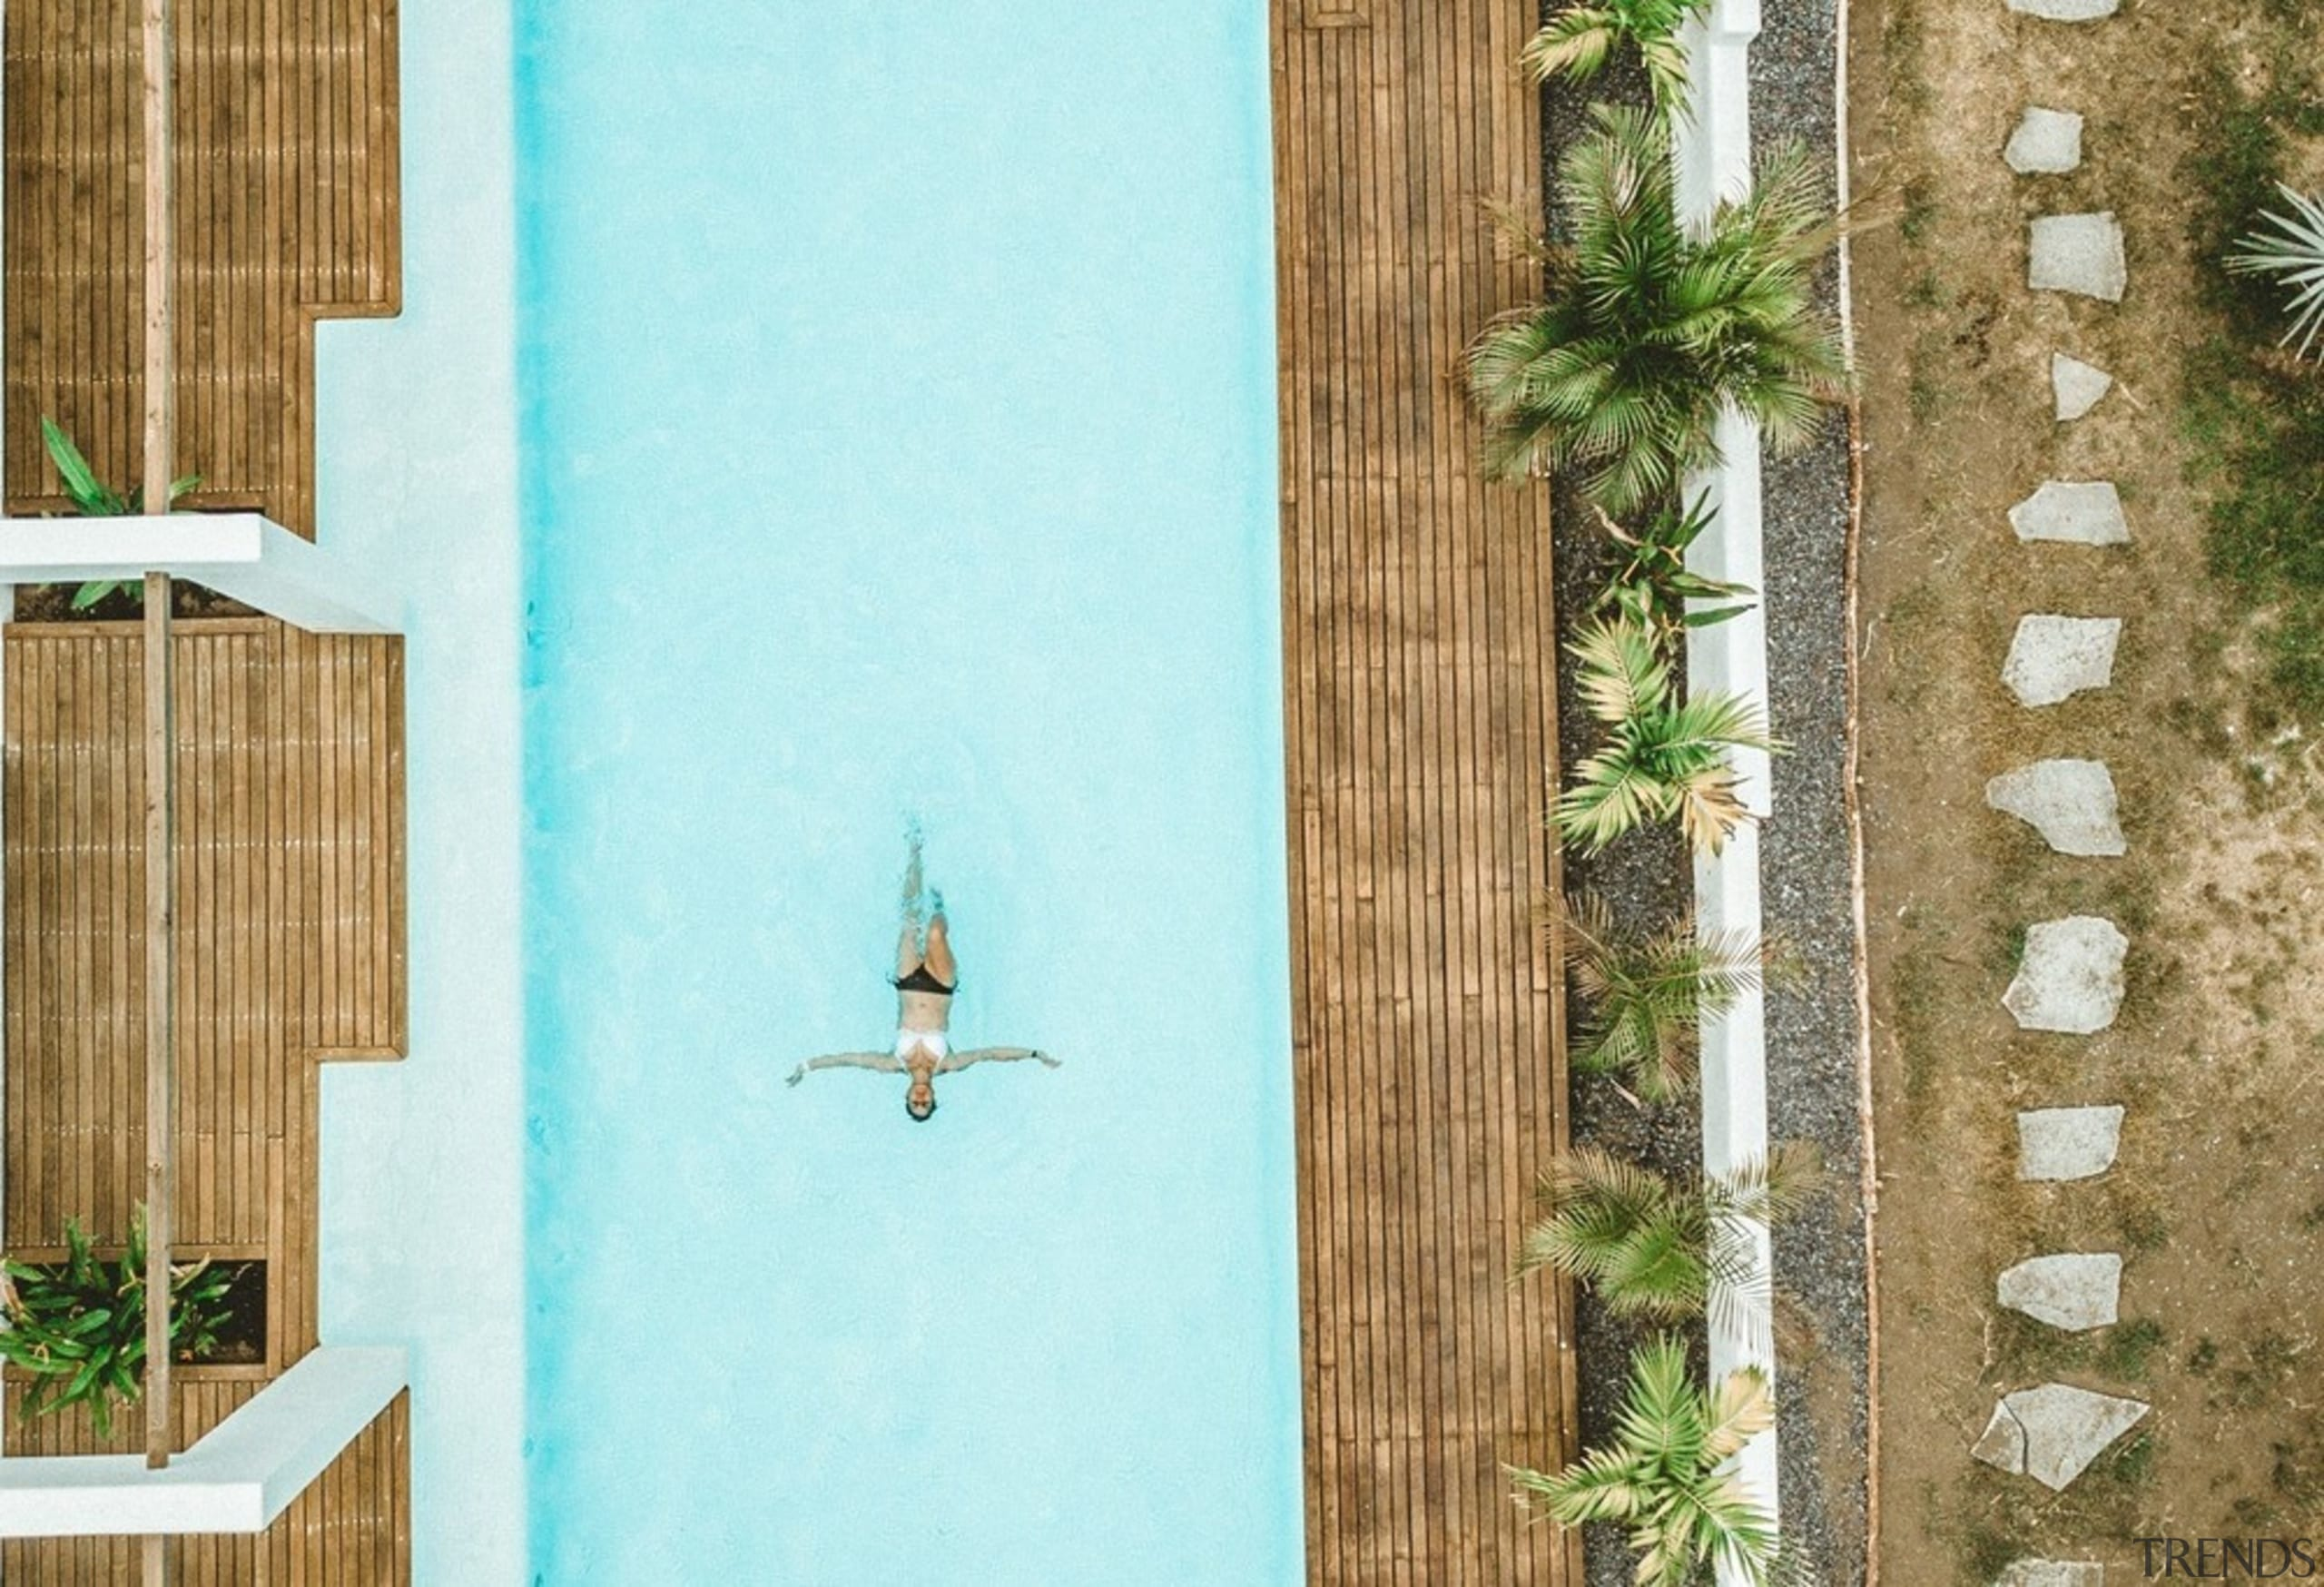 Swell - a surf and lifestyle hotel - door, floor, green, interior design, plant, room, textile, turquoise, wall, window, wood, teal, brown